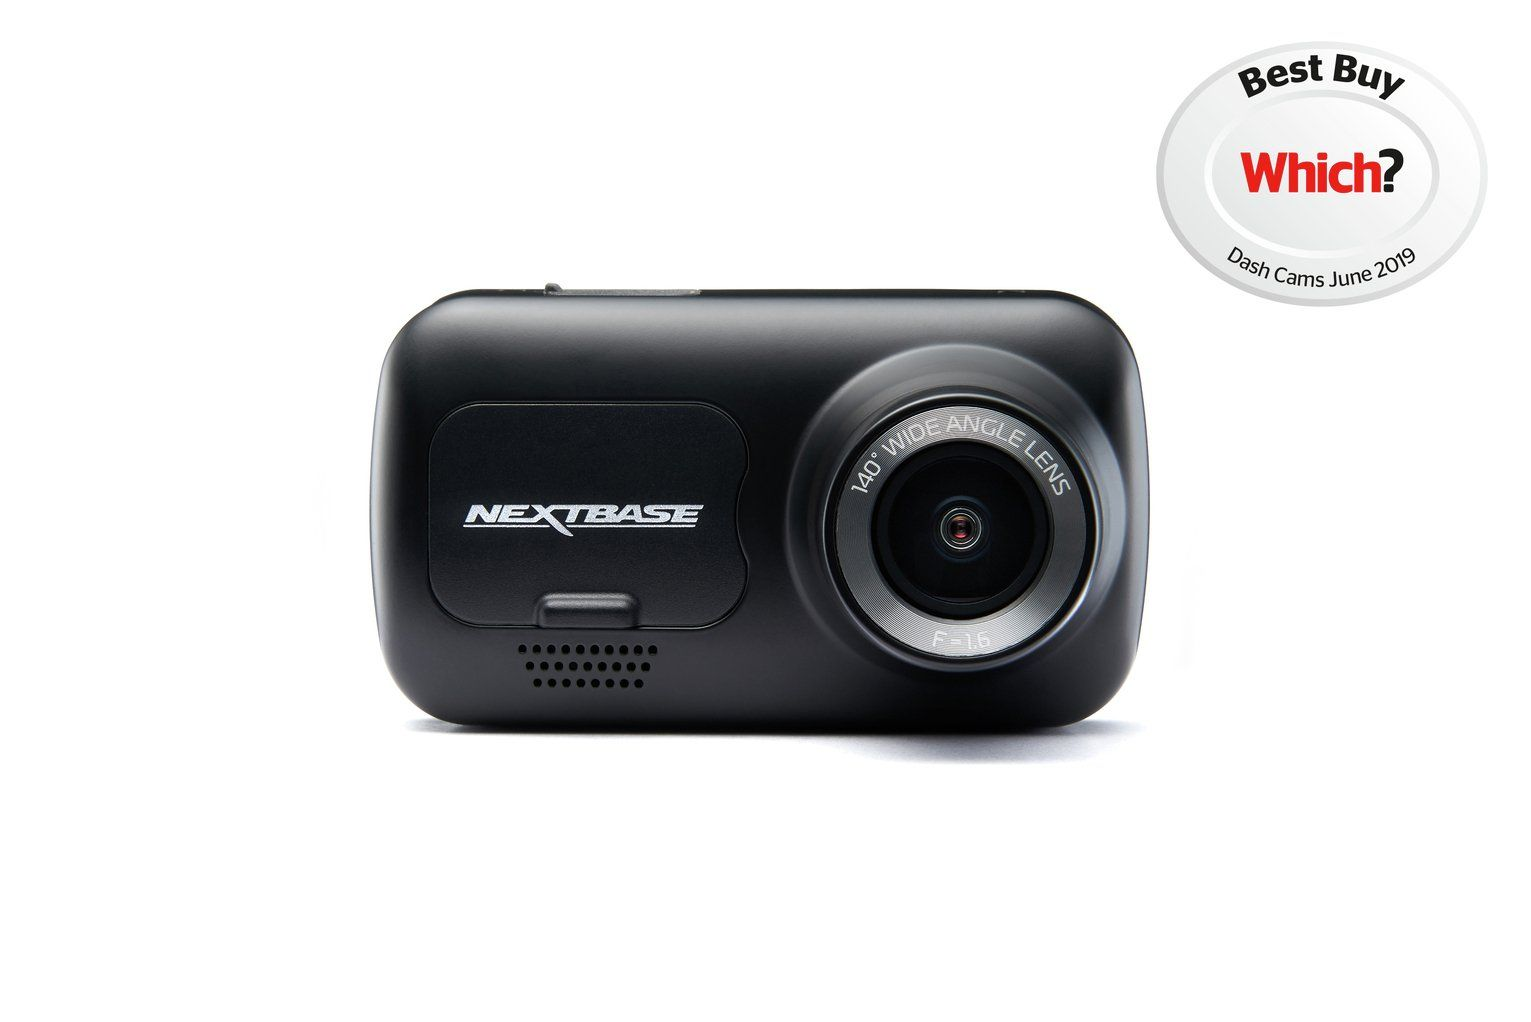 The Nextbase 222 Dash Cam offers full HD, with an improved chipset to record in full 1080p HD. It uses an enhanced 6G lens and 140 viewing angle to capture the road ahead in greater detail. . The 222 uses a brand new compact design, with a clear 2.5-inch HD IPS panel for a user-friendly experience. The exclusive new Click&Go Pro mount features a lower profile design and high strength neodymium magnets for installation and removal from your Dash Cam with just one hand. Save footage using the free